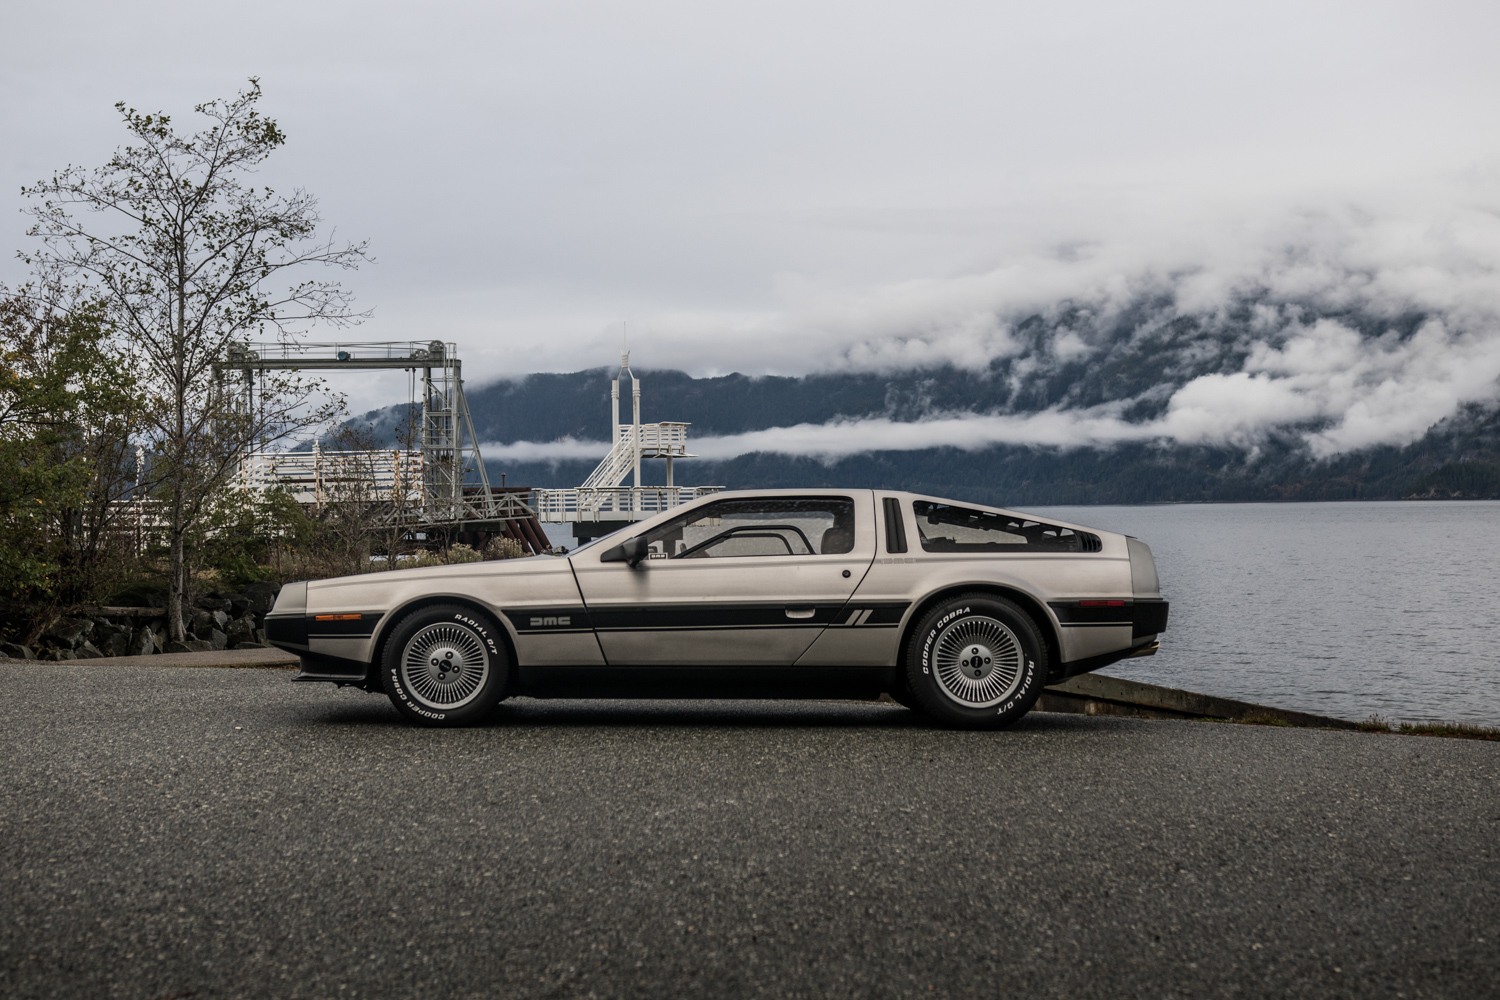 DeLorean DMC-12 vs Bricklin SV1 side shot dmc